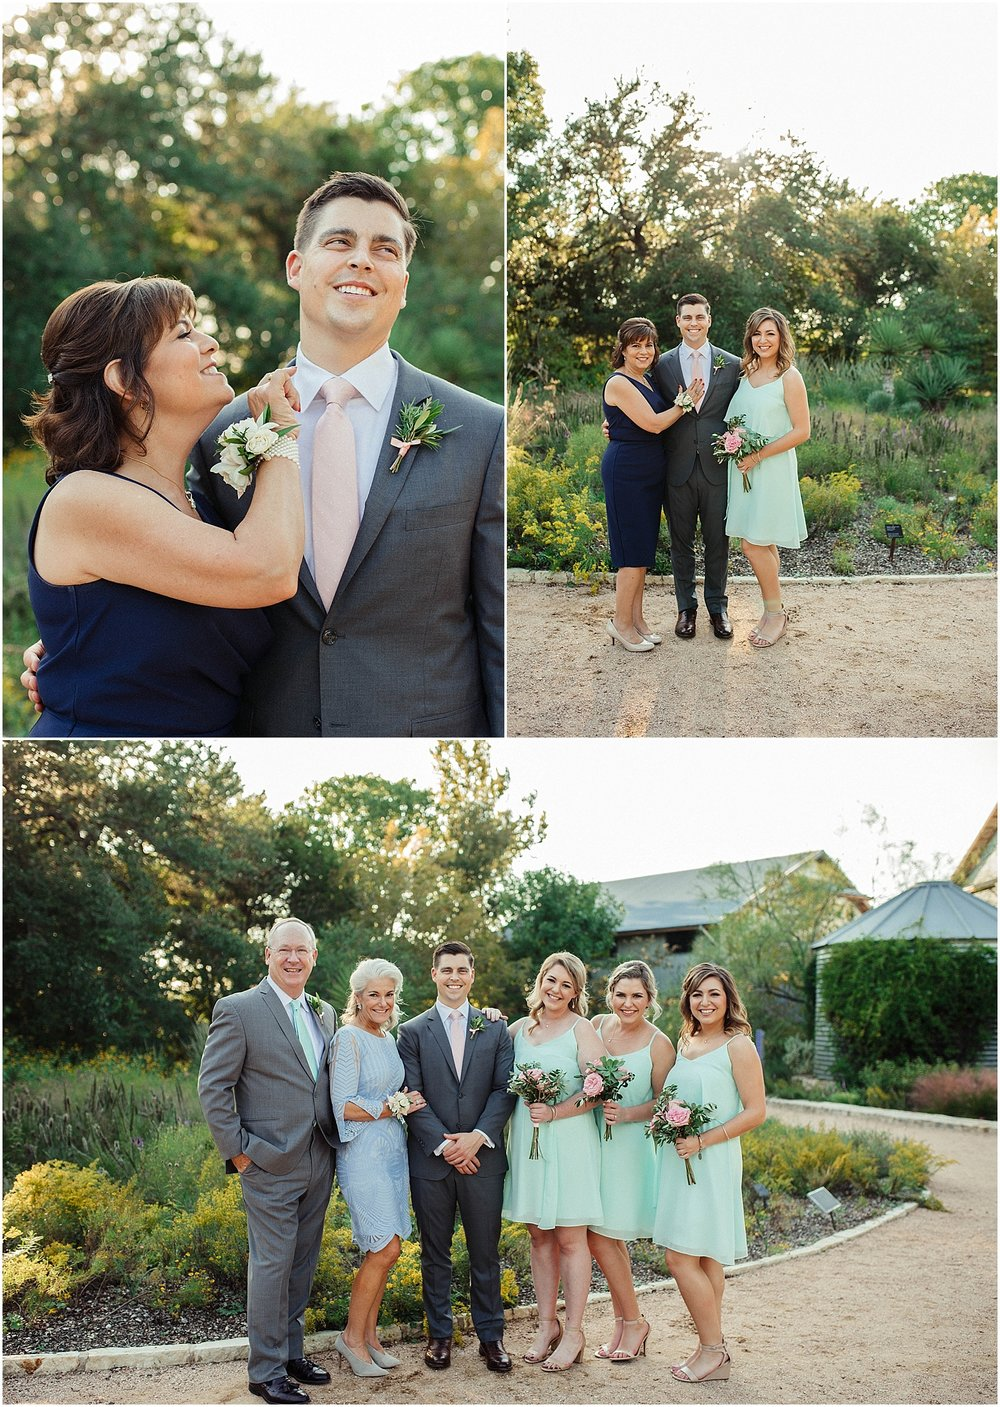 Groom with Family Blush Pink Bridal Details at Lady Bird Johnson Wildflower Center Austin Texas Wedding